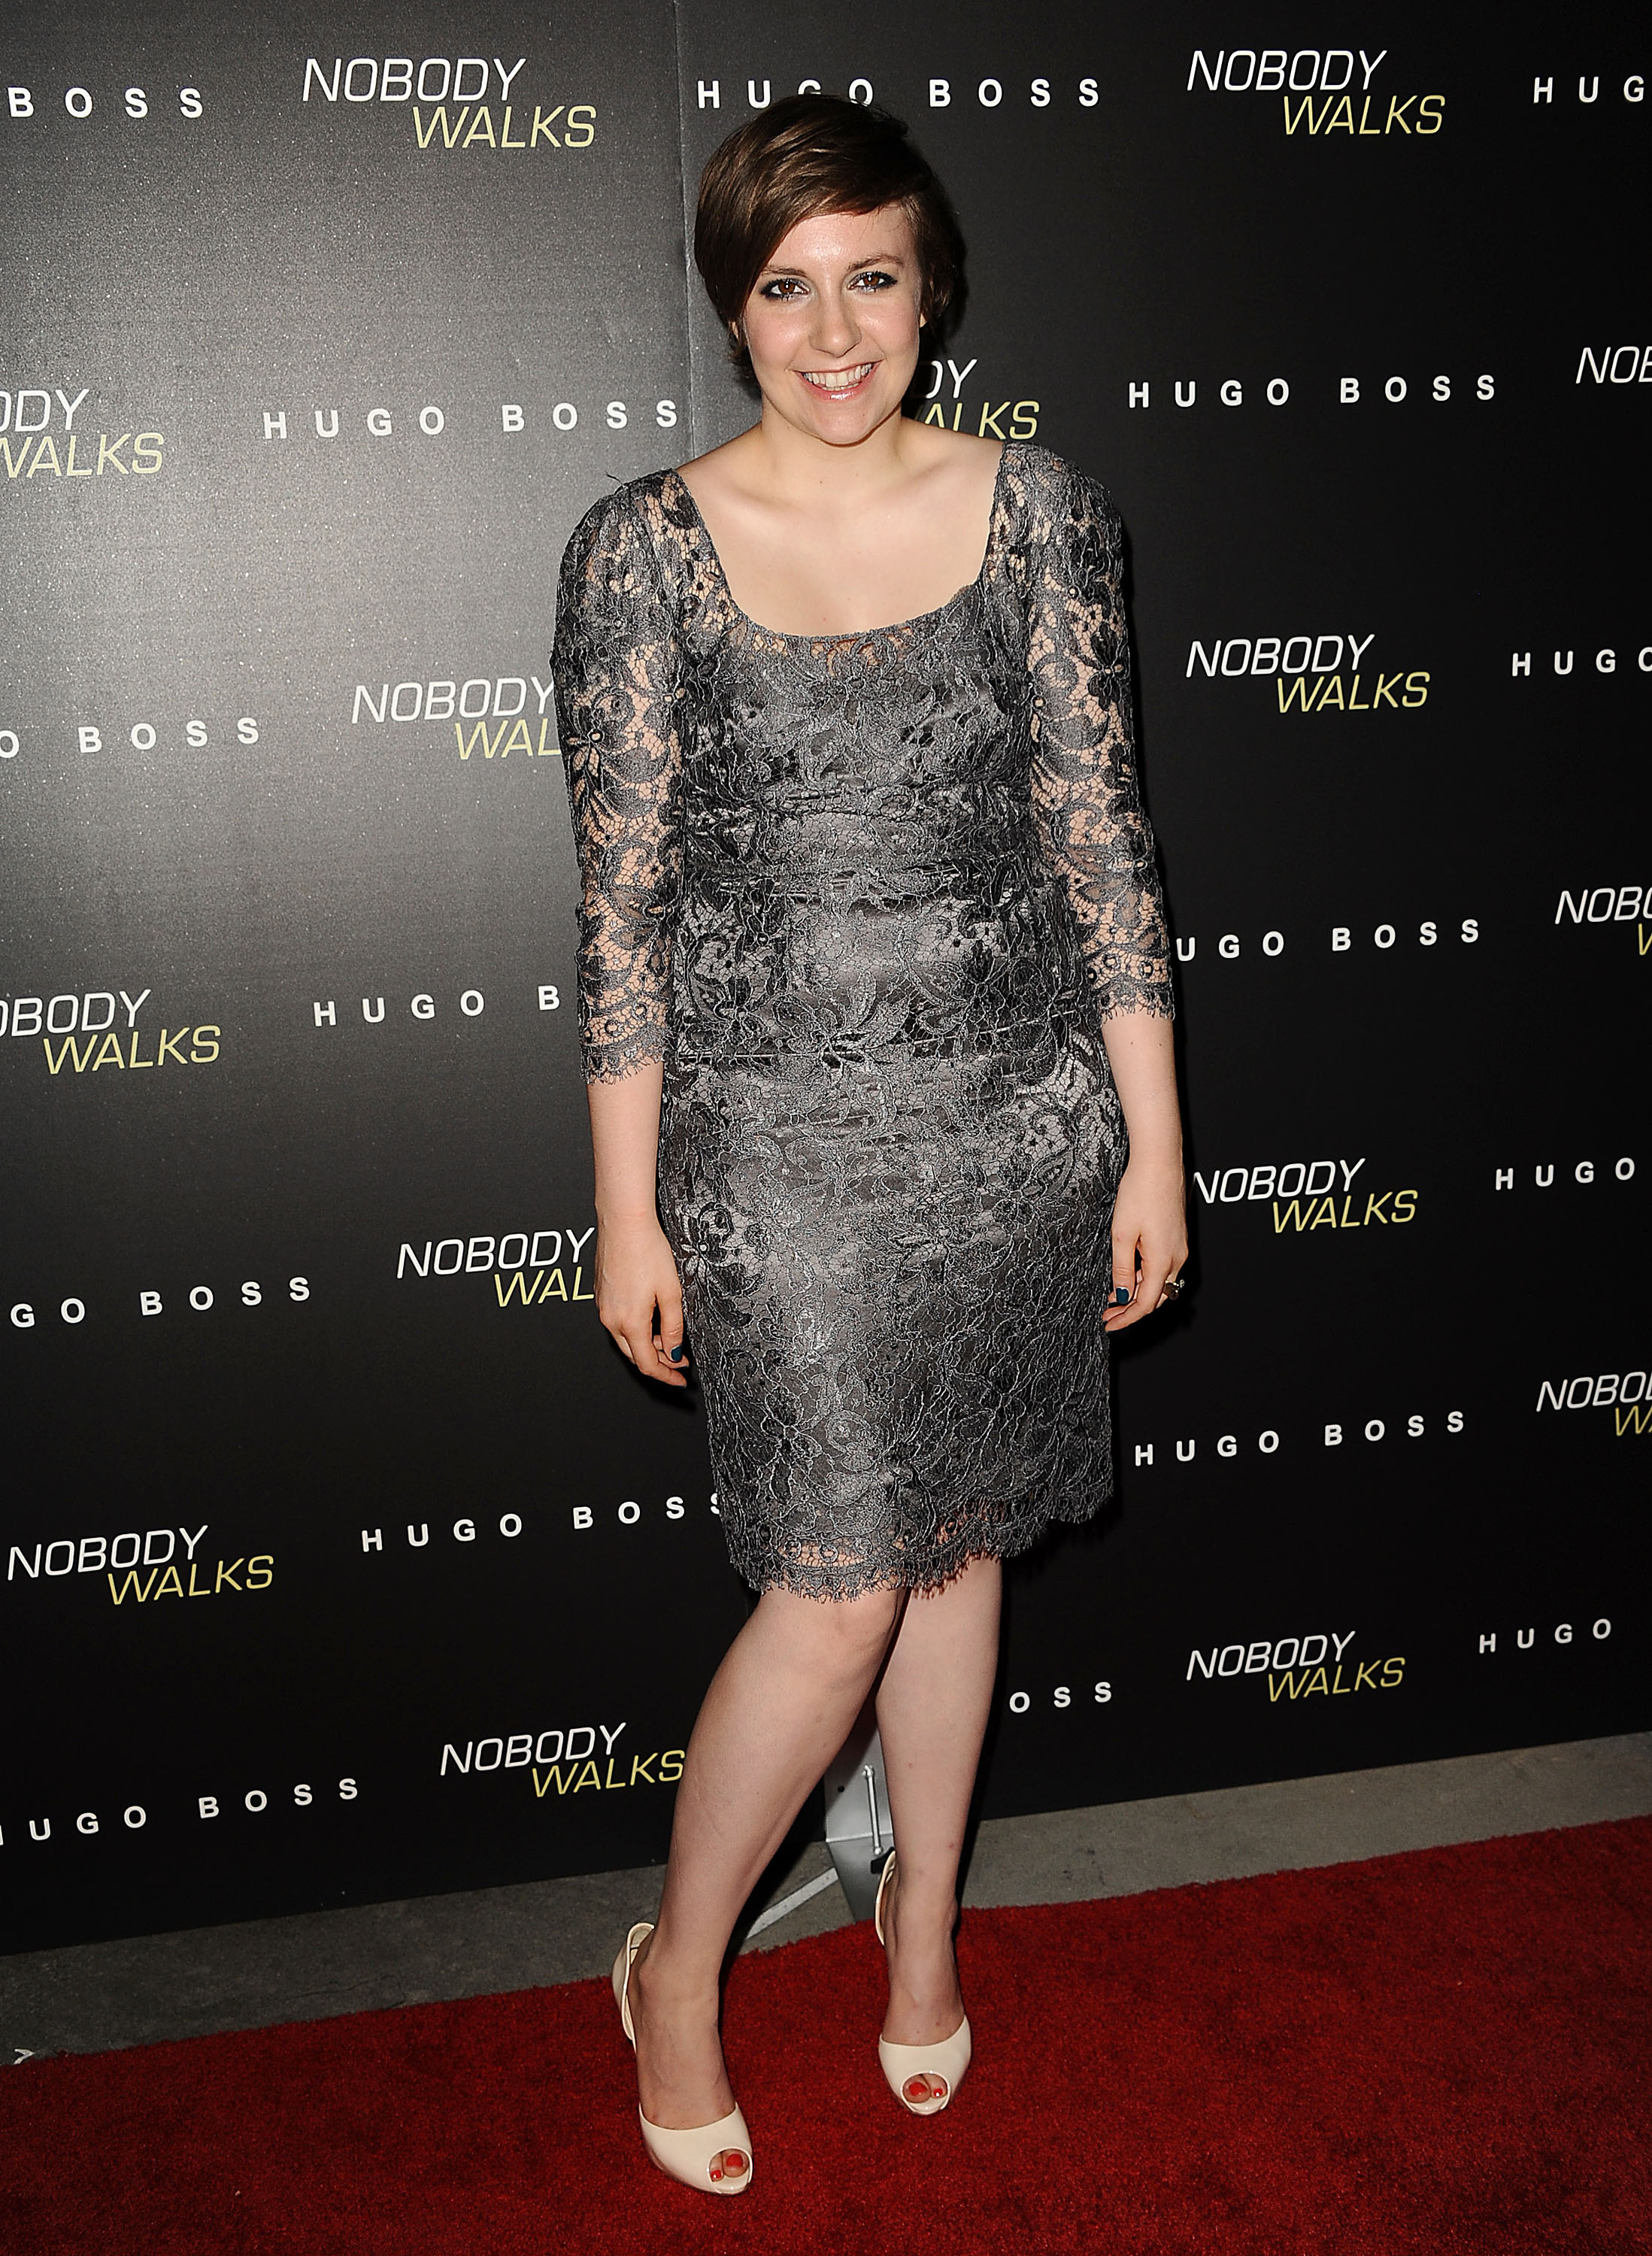 Lena Dunham snapped photos prior to the screening.